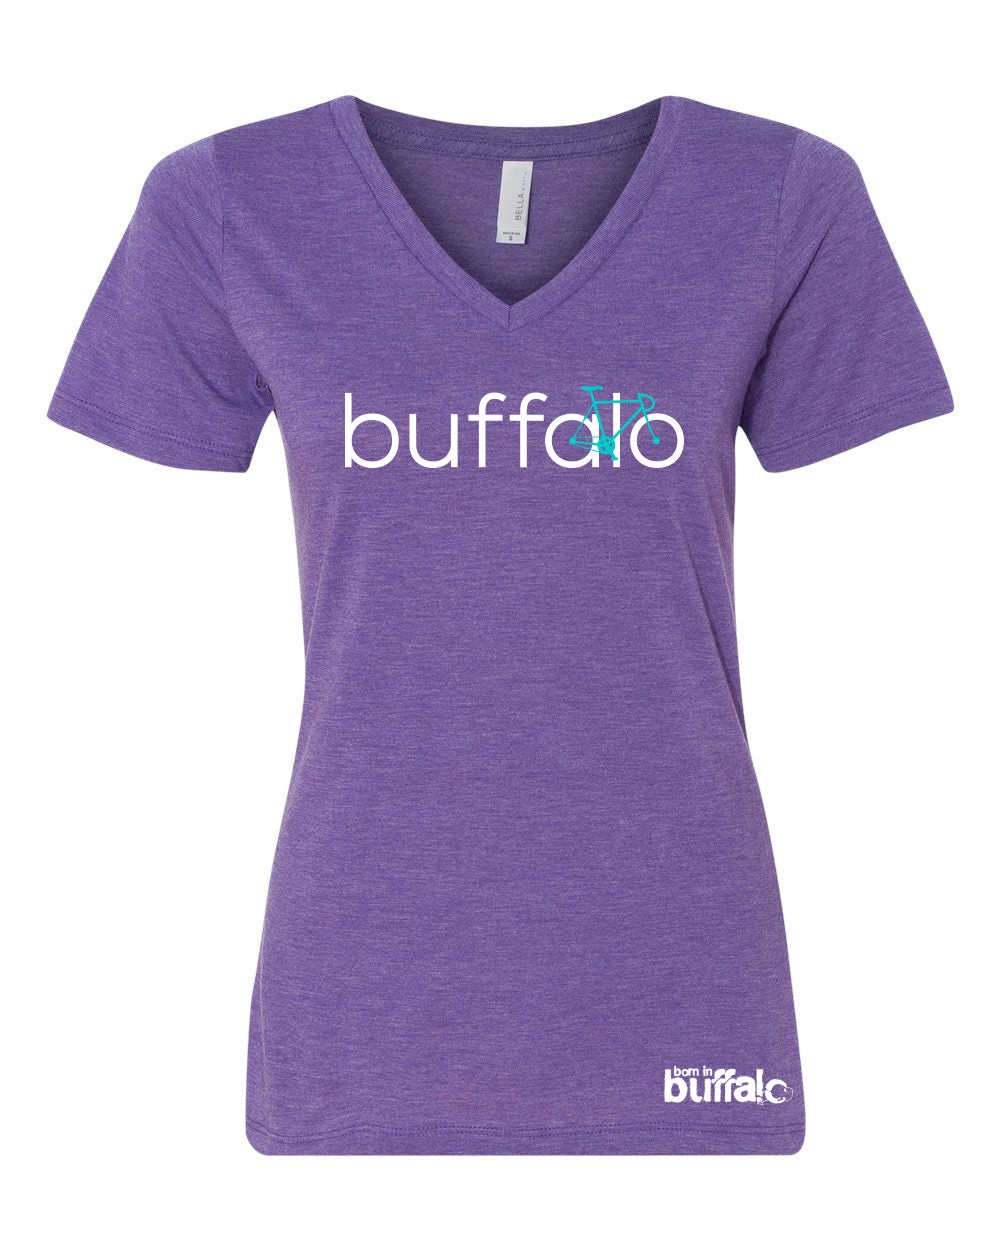 Image of BIKE Buffalo Ladies V-Neck